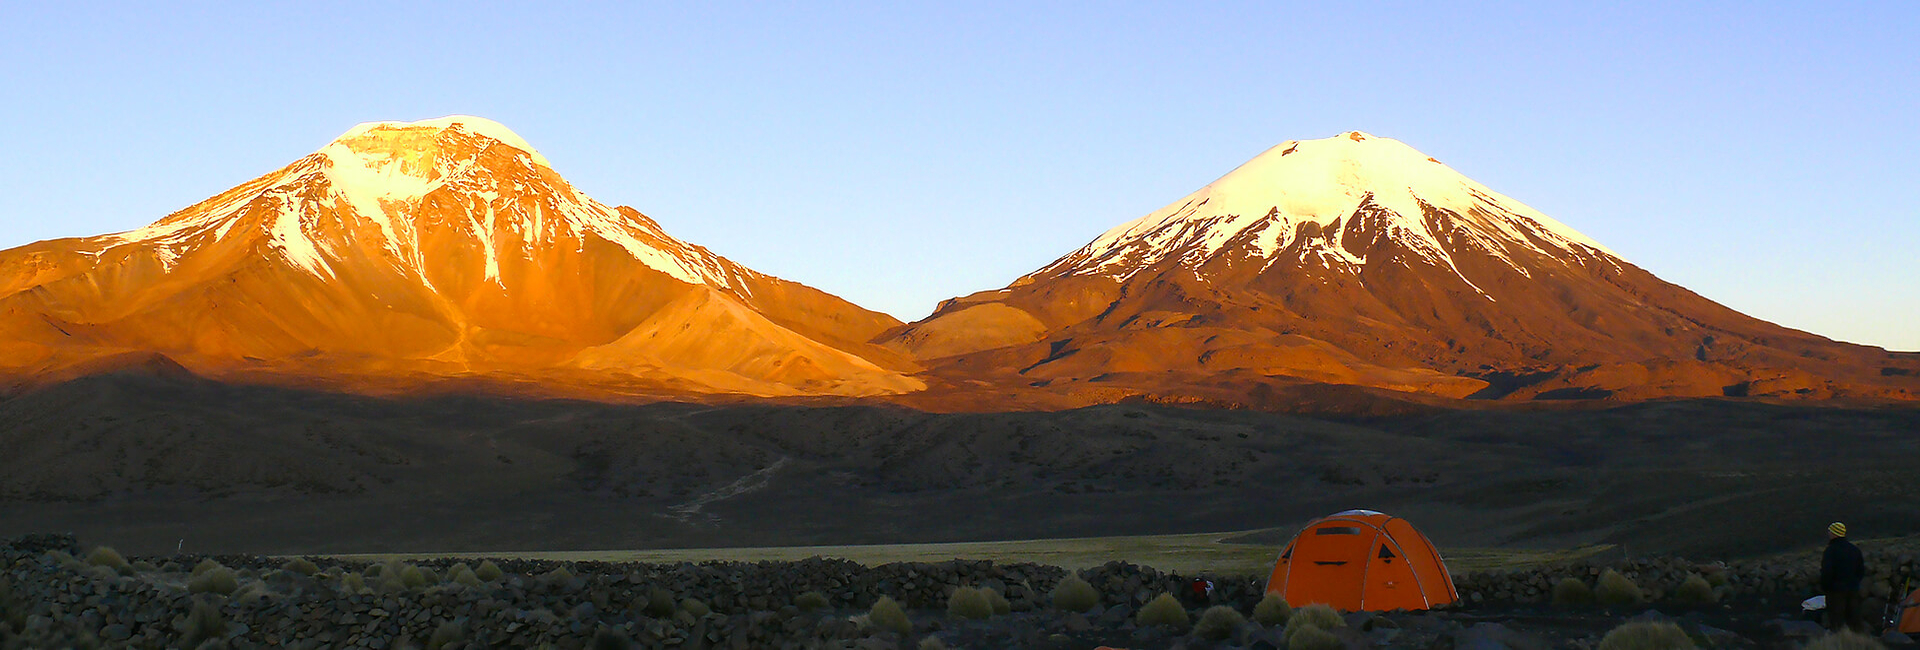 Volcanoes Parinacota and Pomerape in the Chilean Andes, Altiplano